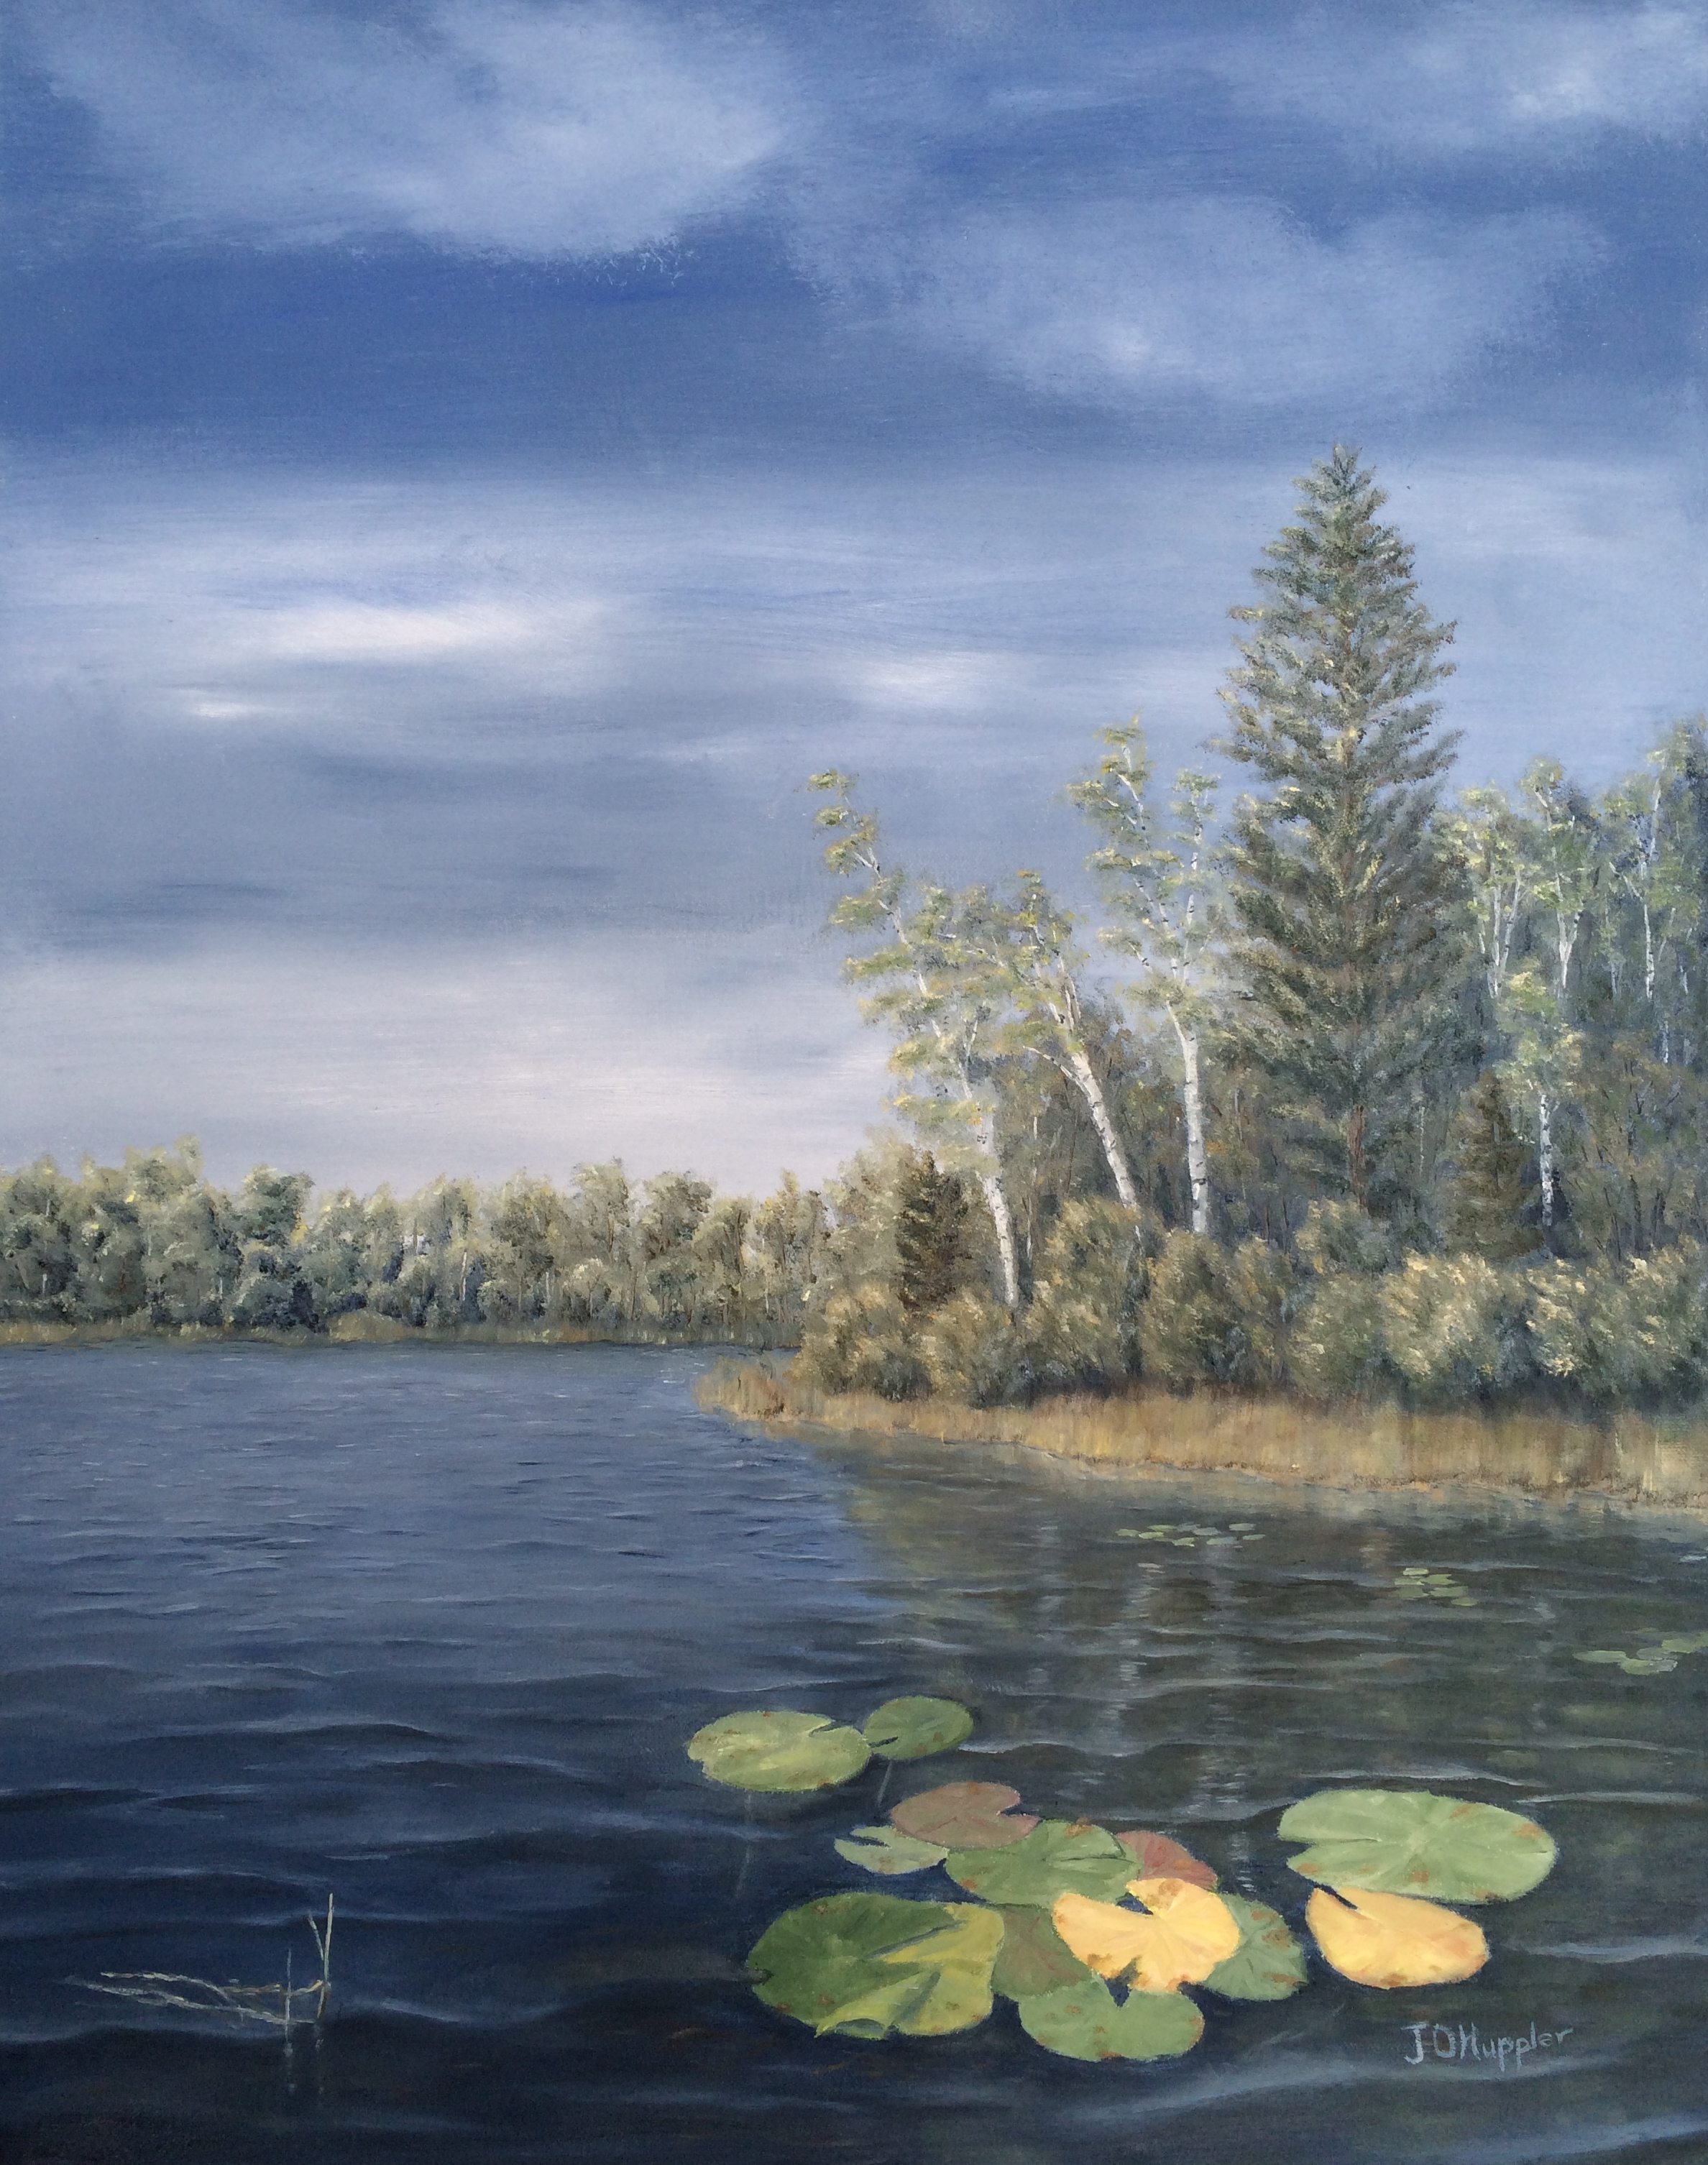 The Woods Wood Be Quiet If No Birds Sang Except The Best: New Paintings